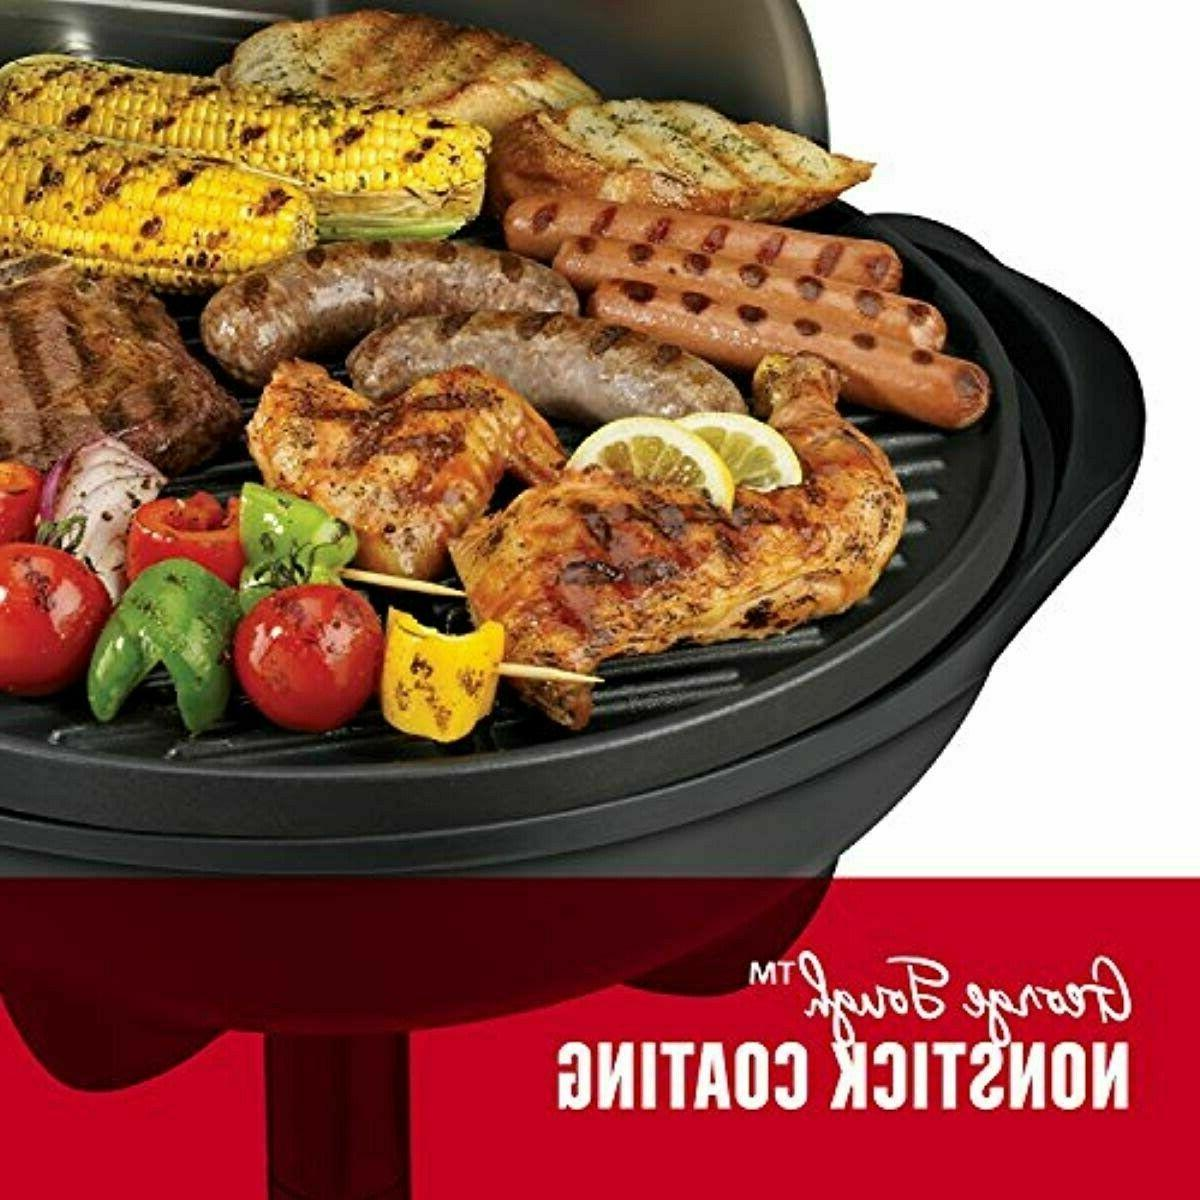 George Foreman 15+ Serving Indoor/Outdoor Electric Grill,